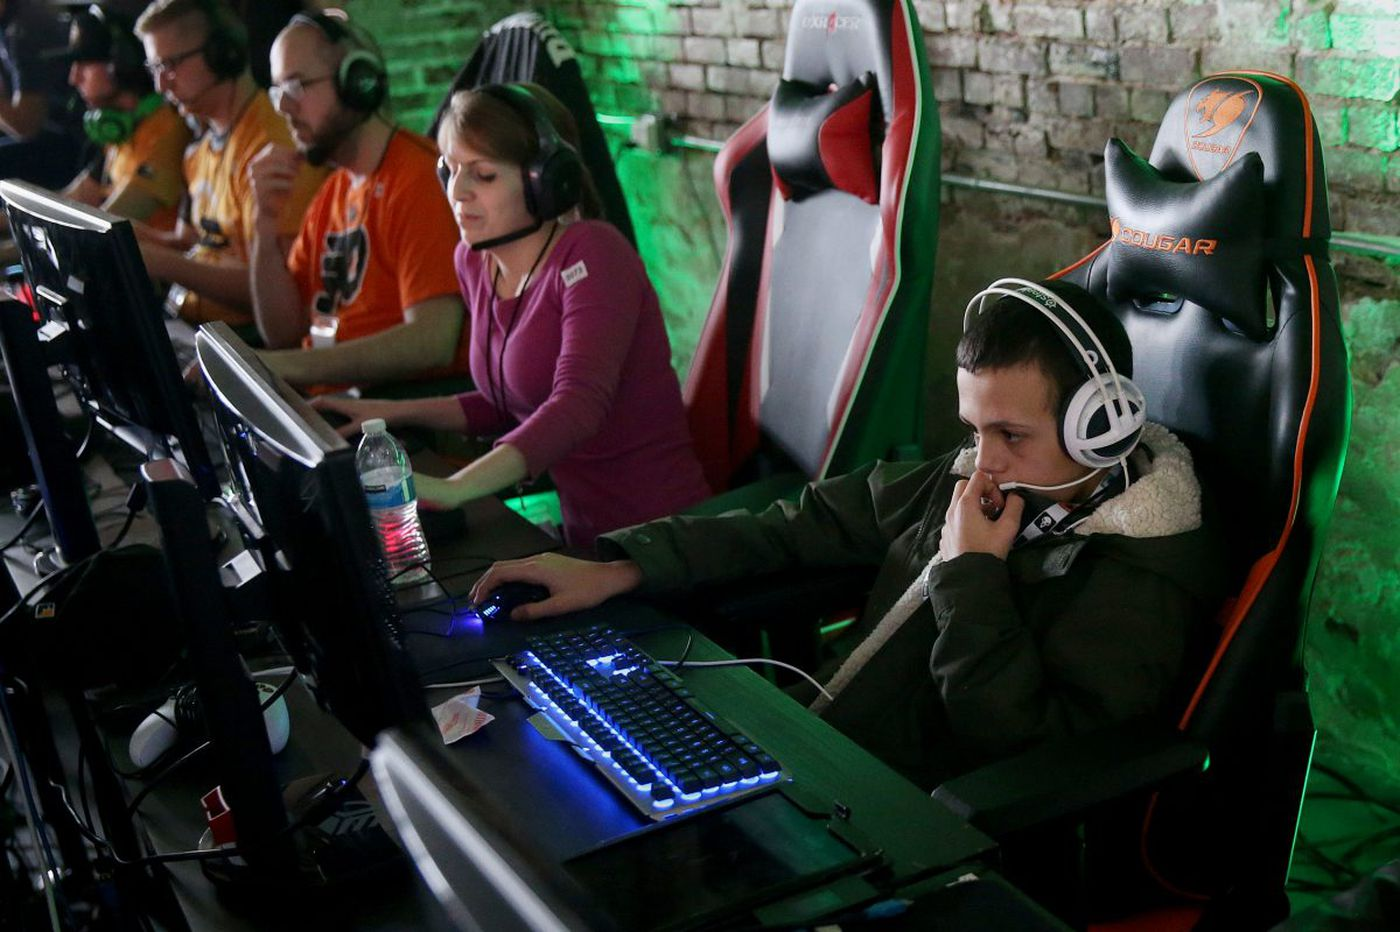 Comcast tweets out a call for Overwatch gamers and a crowd appears in Northern Liberties